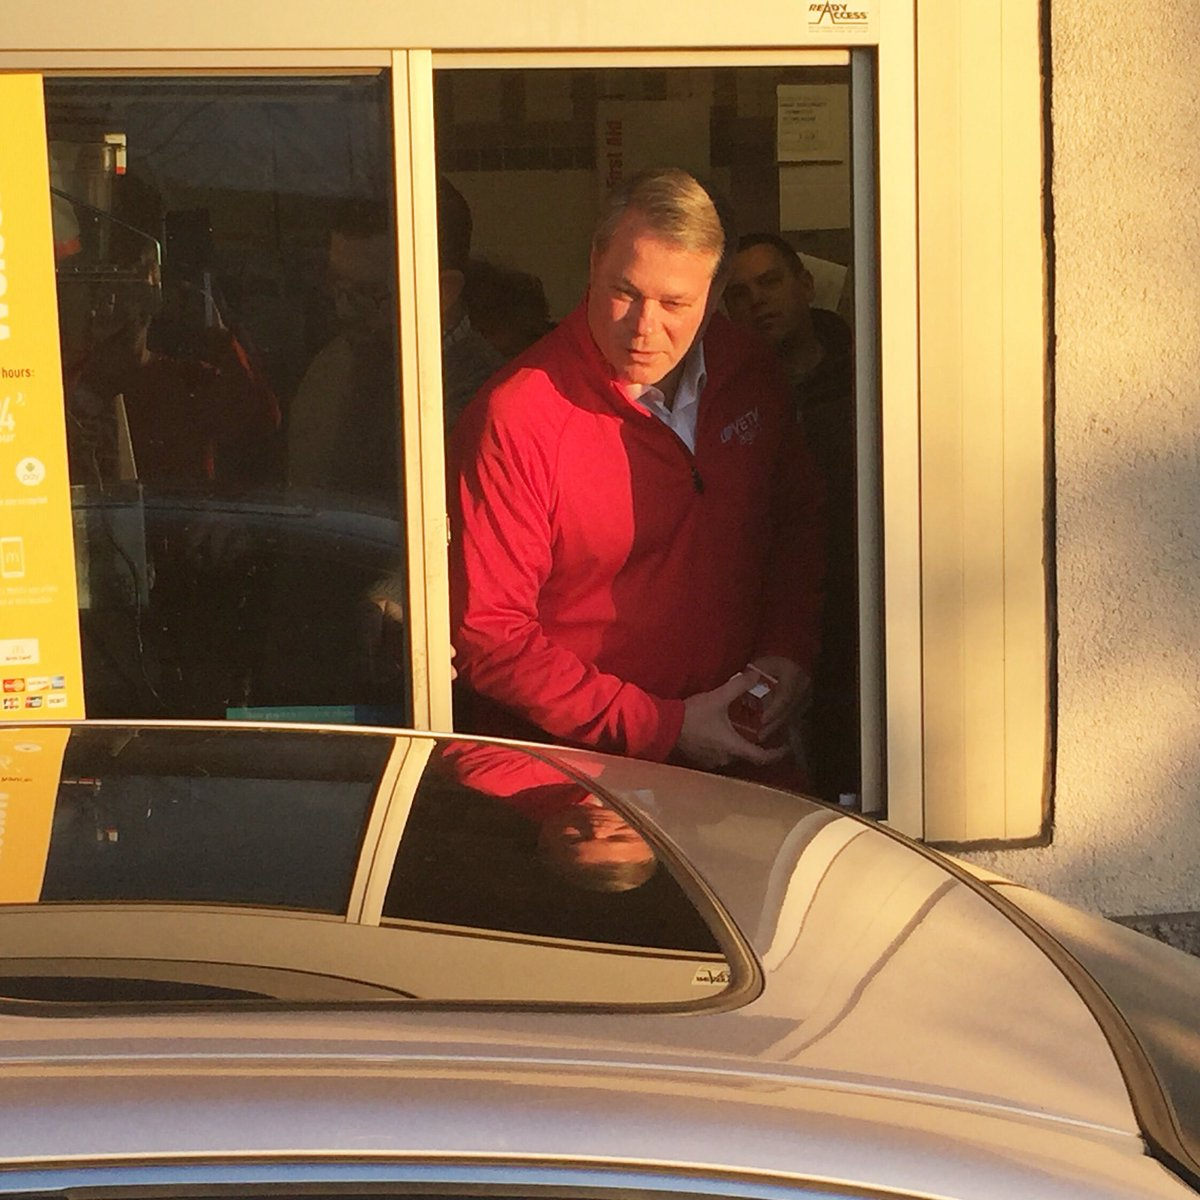 This morning, our CEO Ted Torbeck dropped by the Kenwood McDonald's to #ShareTheLove & buy everyone breakfast https://t.co/antmdsK8pR